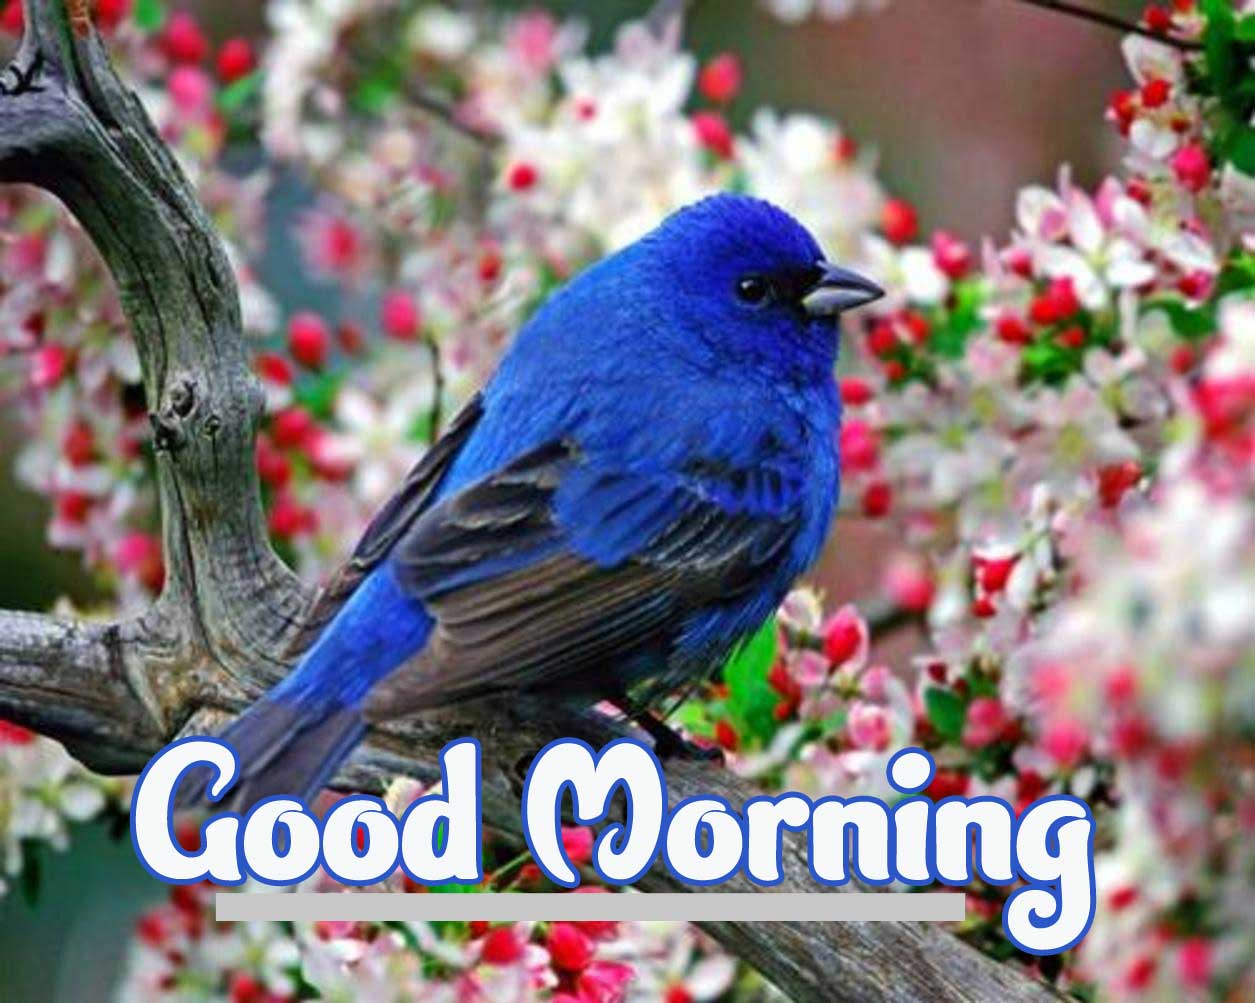 Latest Good Morning Images Full HD Free Download 95